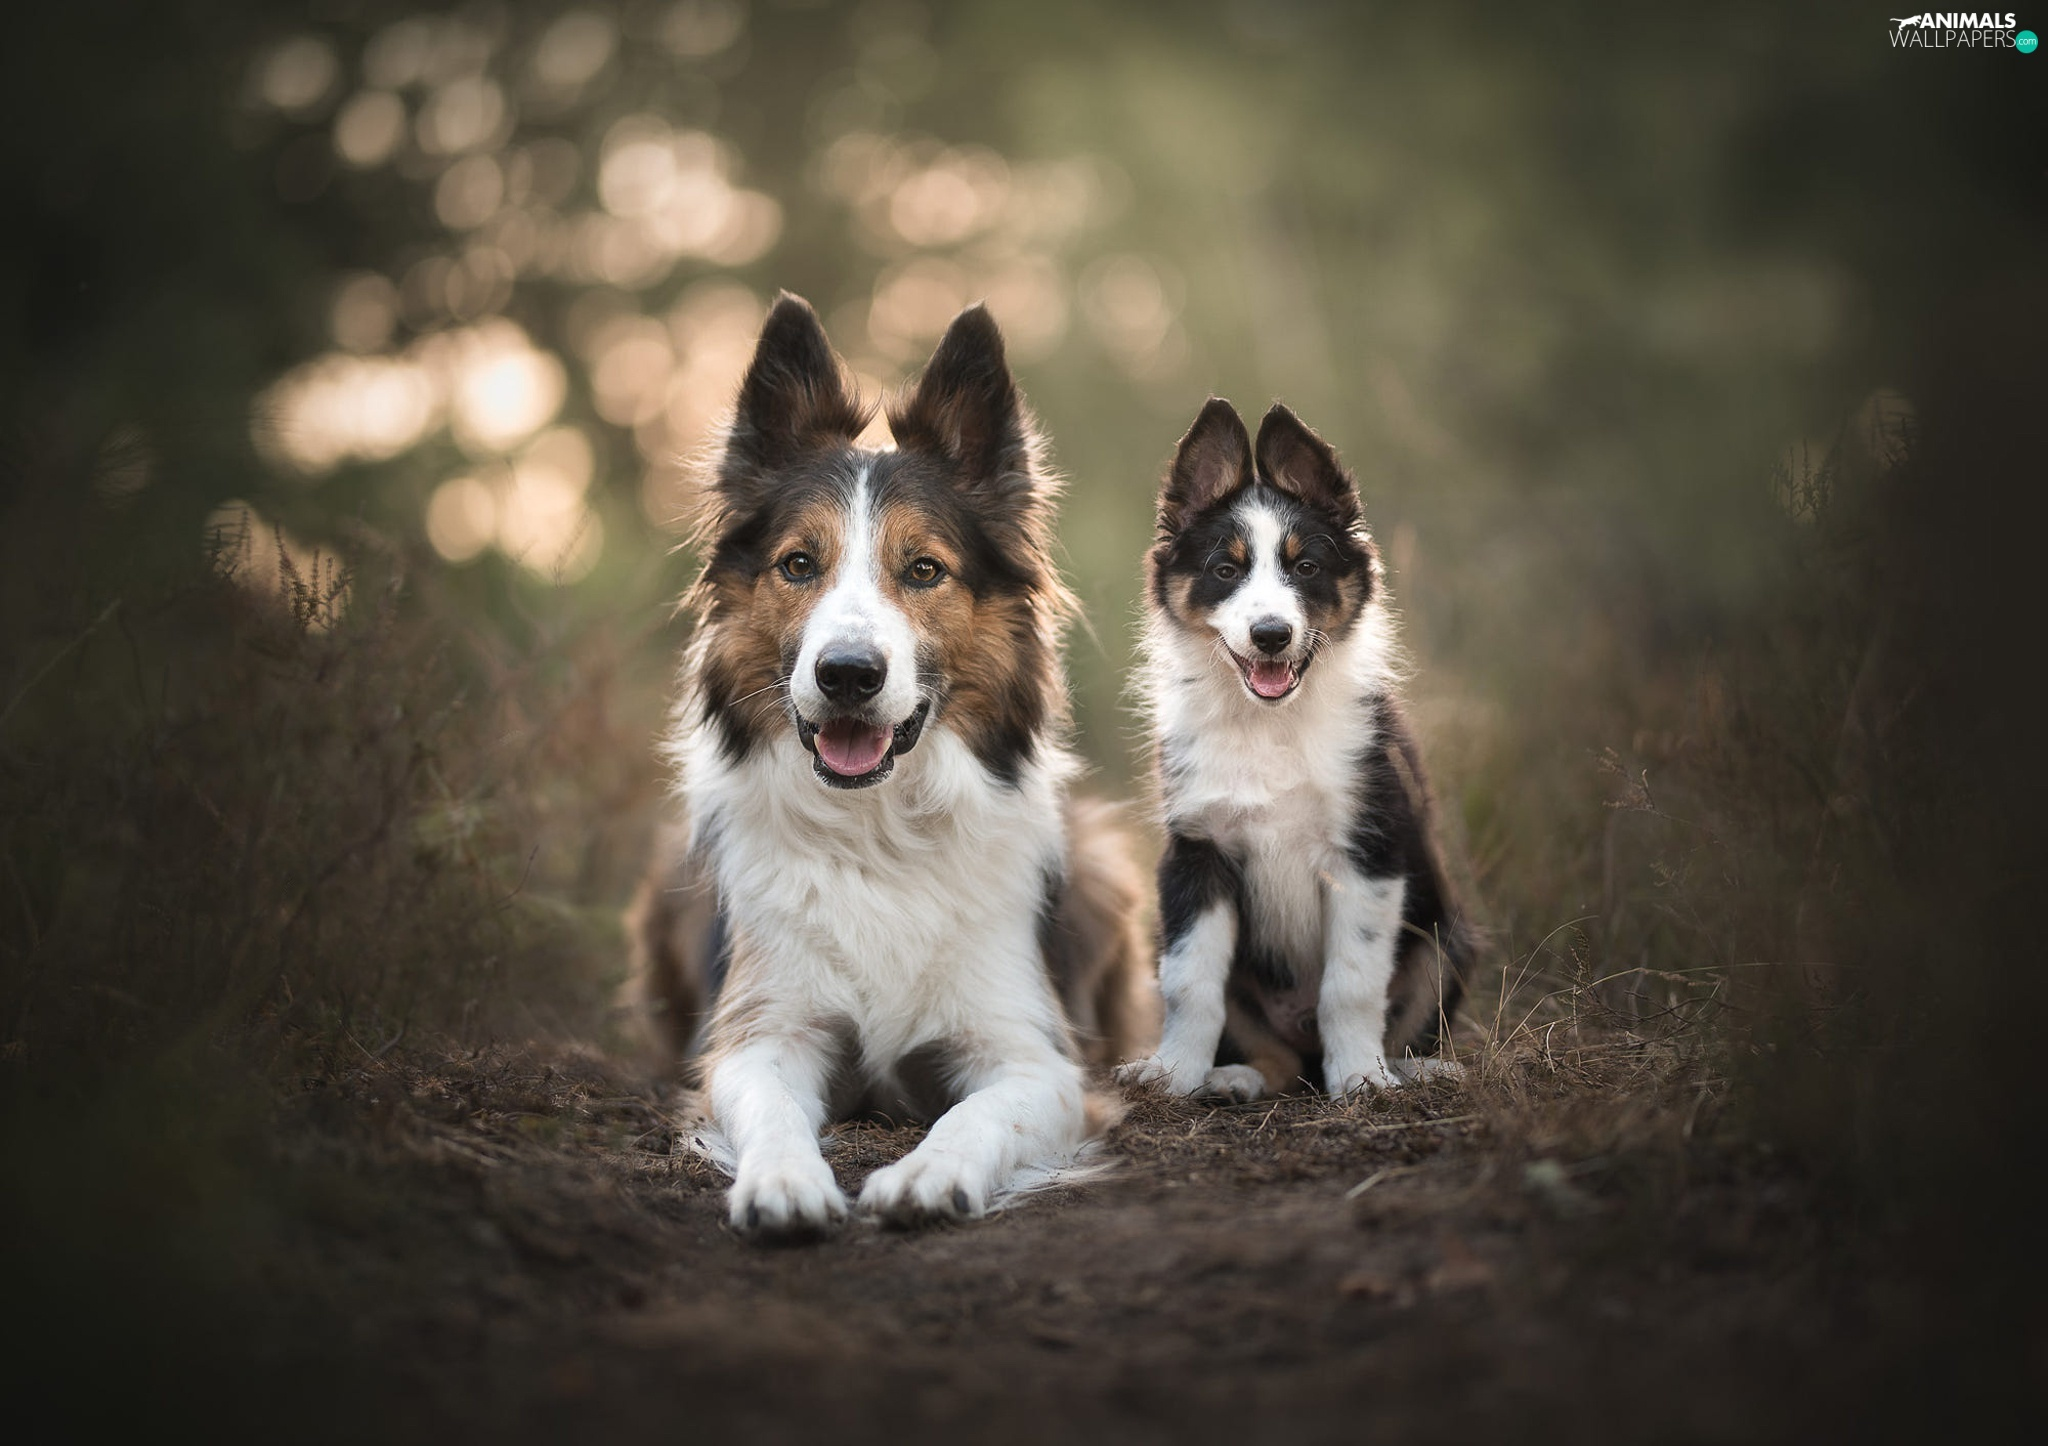 Two cars, Border Collie, Puppy, Dogs